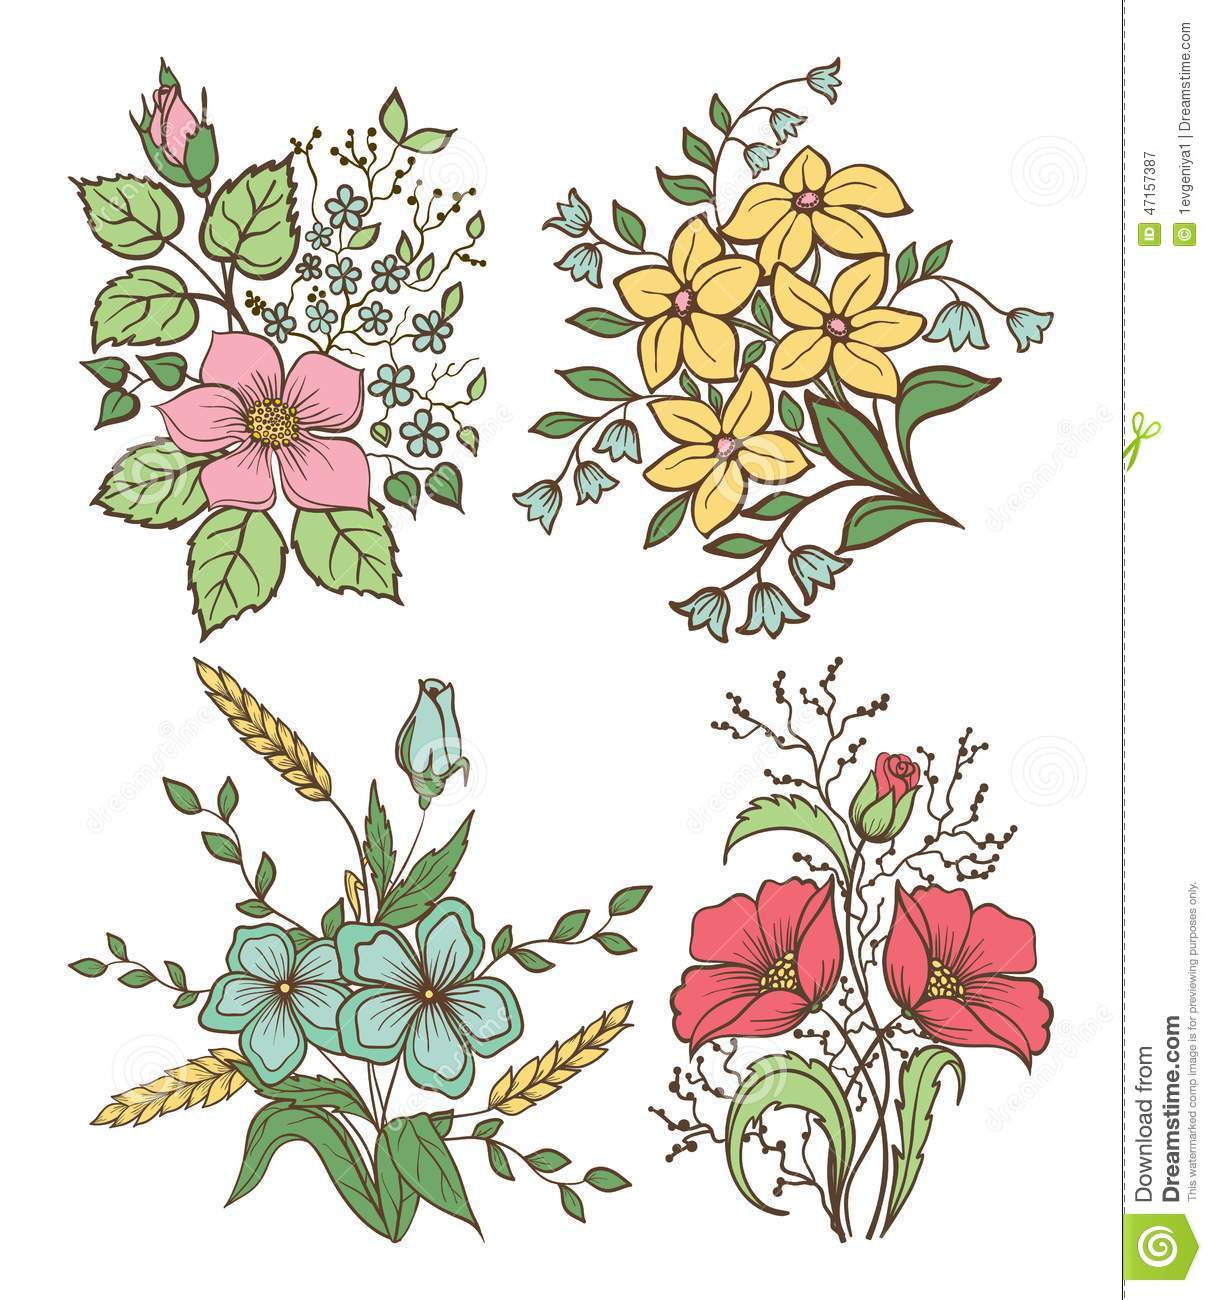 Rustic Fall Wallpaper Vector Flowers Set Colorful Floral Collection With Leaves